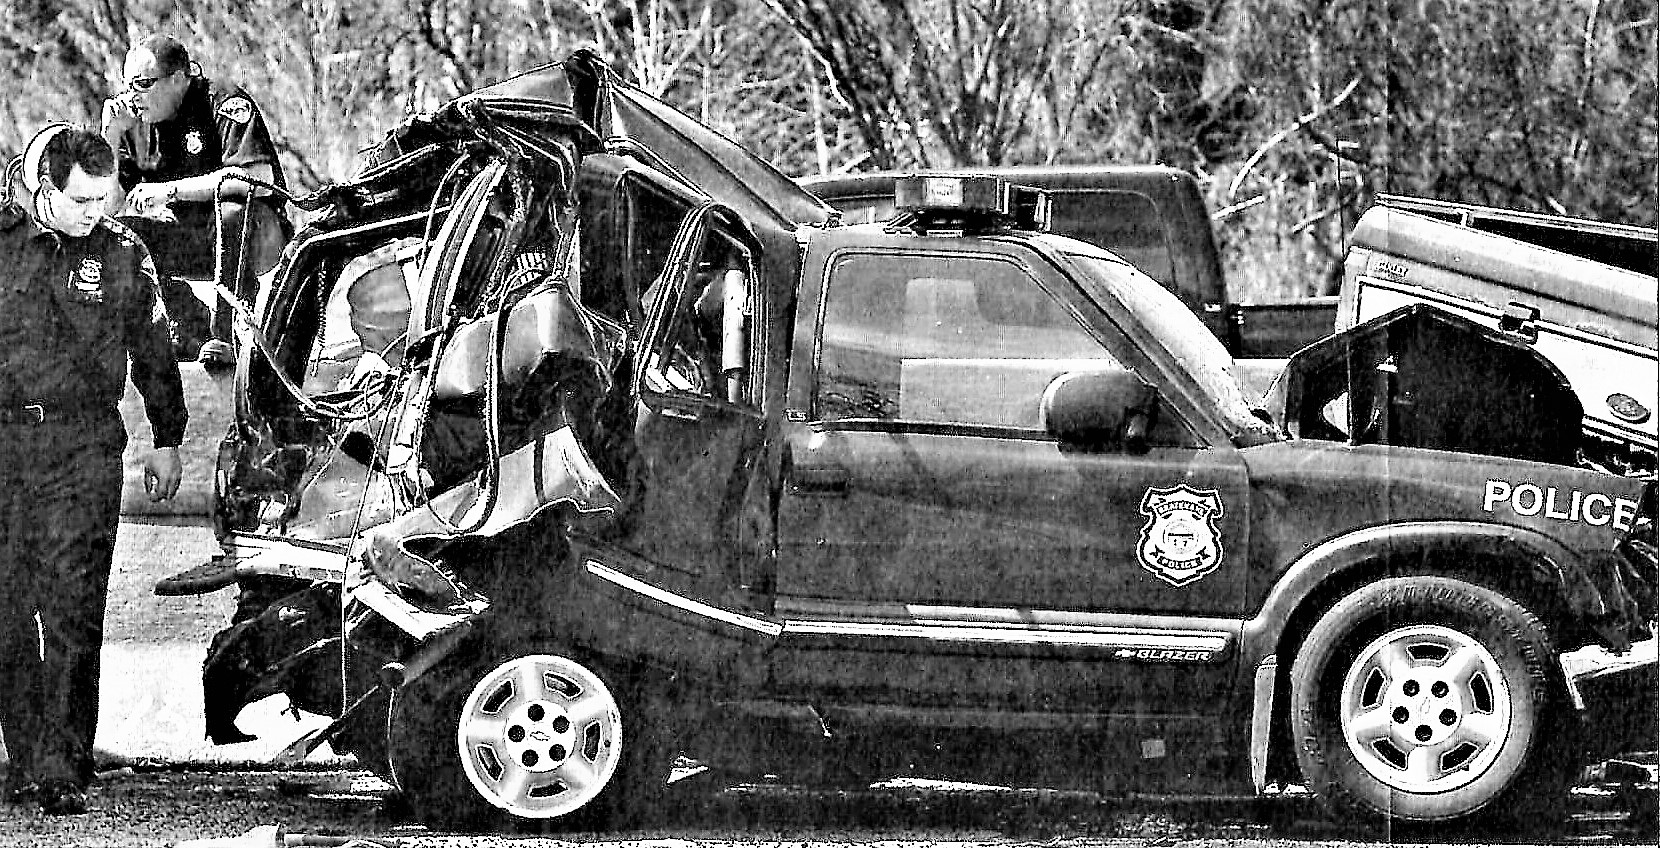 I-90 Police Accident 2006